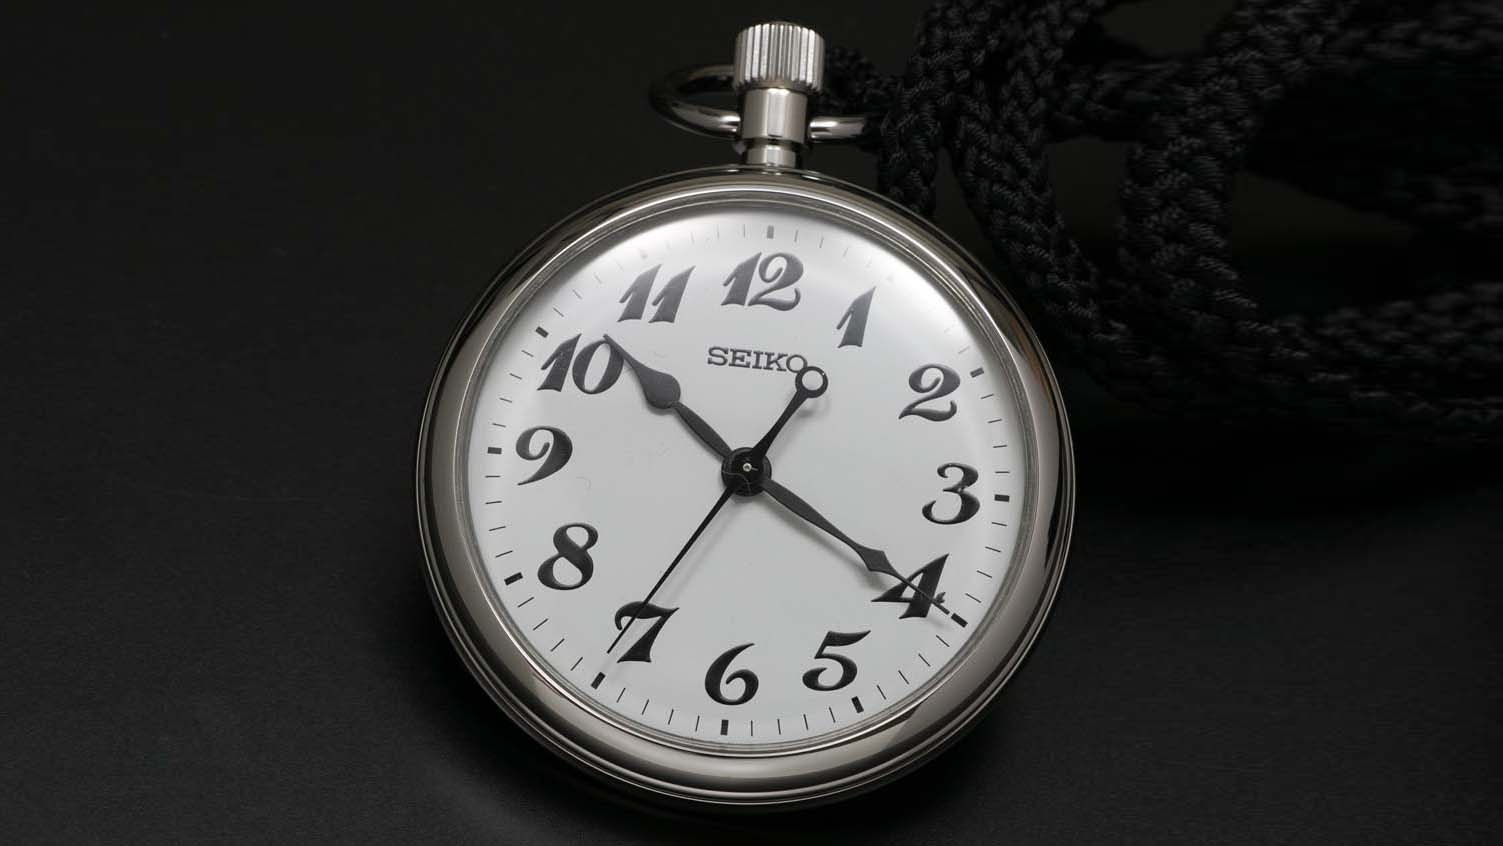 Watchmaker Seiko has been providing precise mechanical timepieces to Japanese railway conductors since 1929.